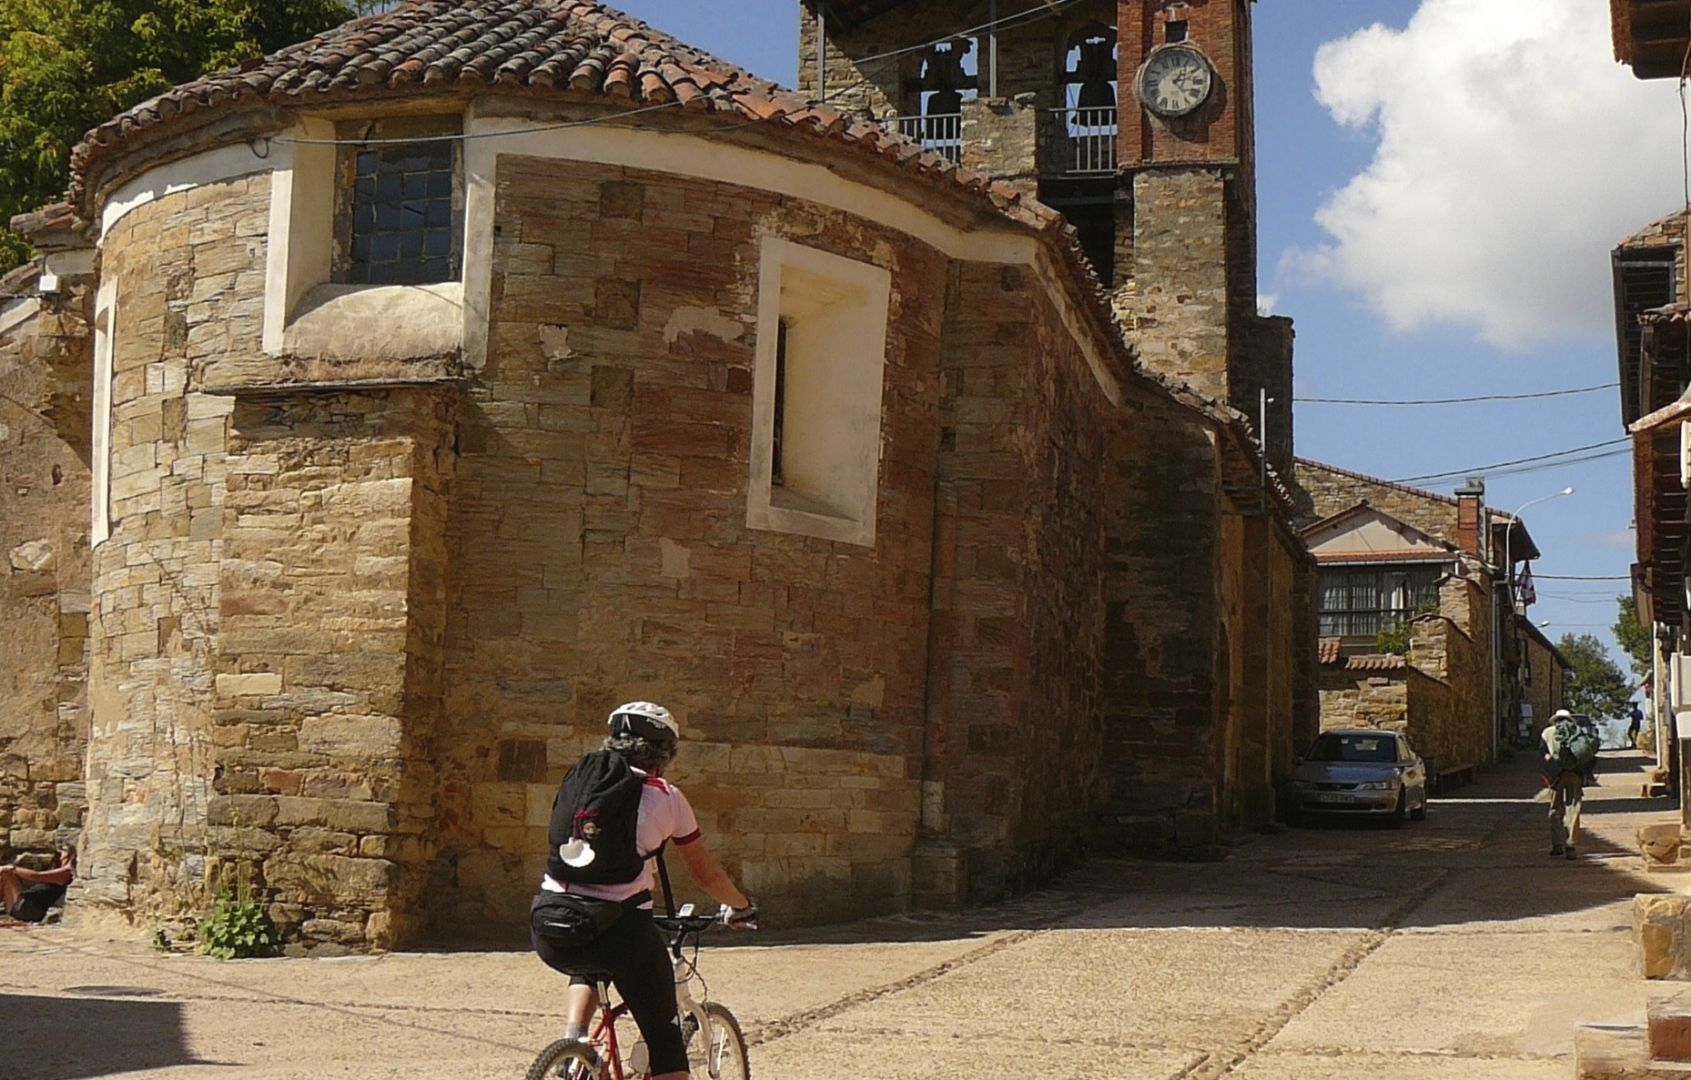 Skedaddle Spain Camino de Santiago Cycling Holiday 5.jpg - Portugal - Historic Villages - Self-Guided Leisure Cycling Holiday - Leisure Cycling